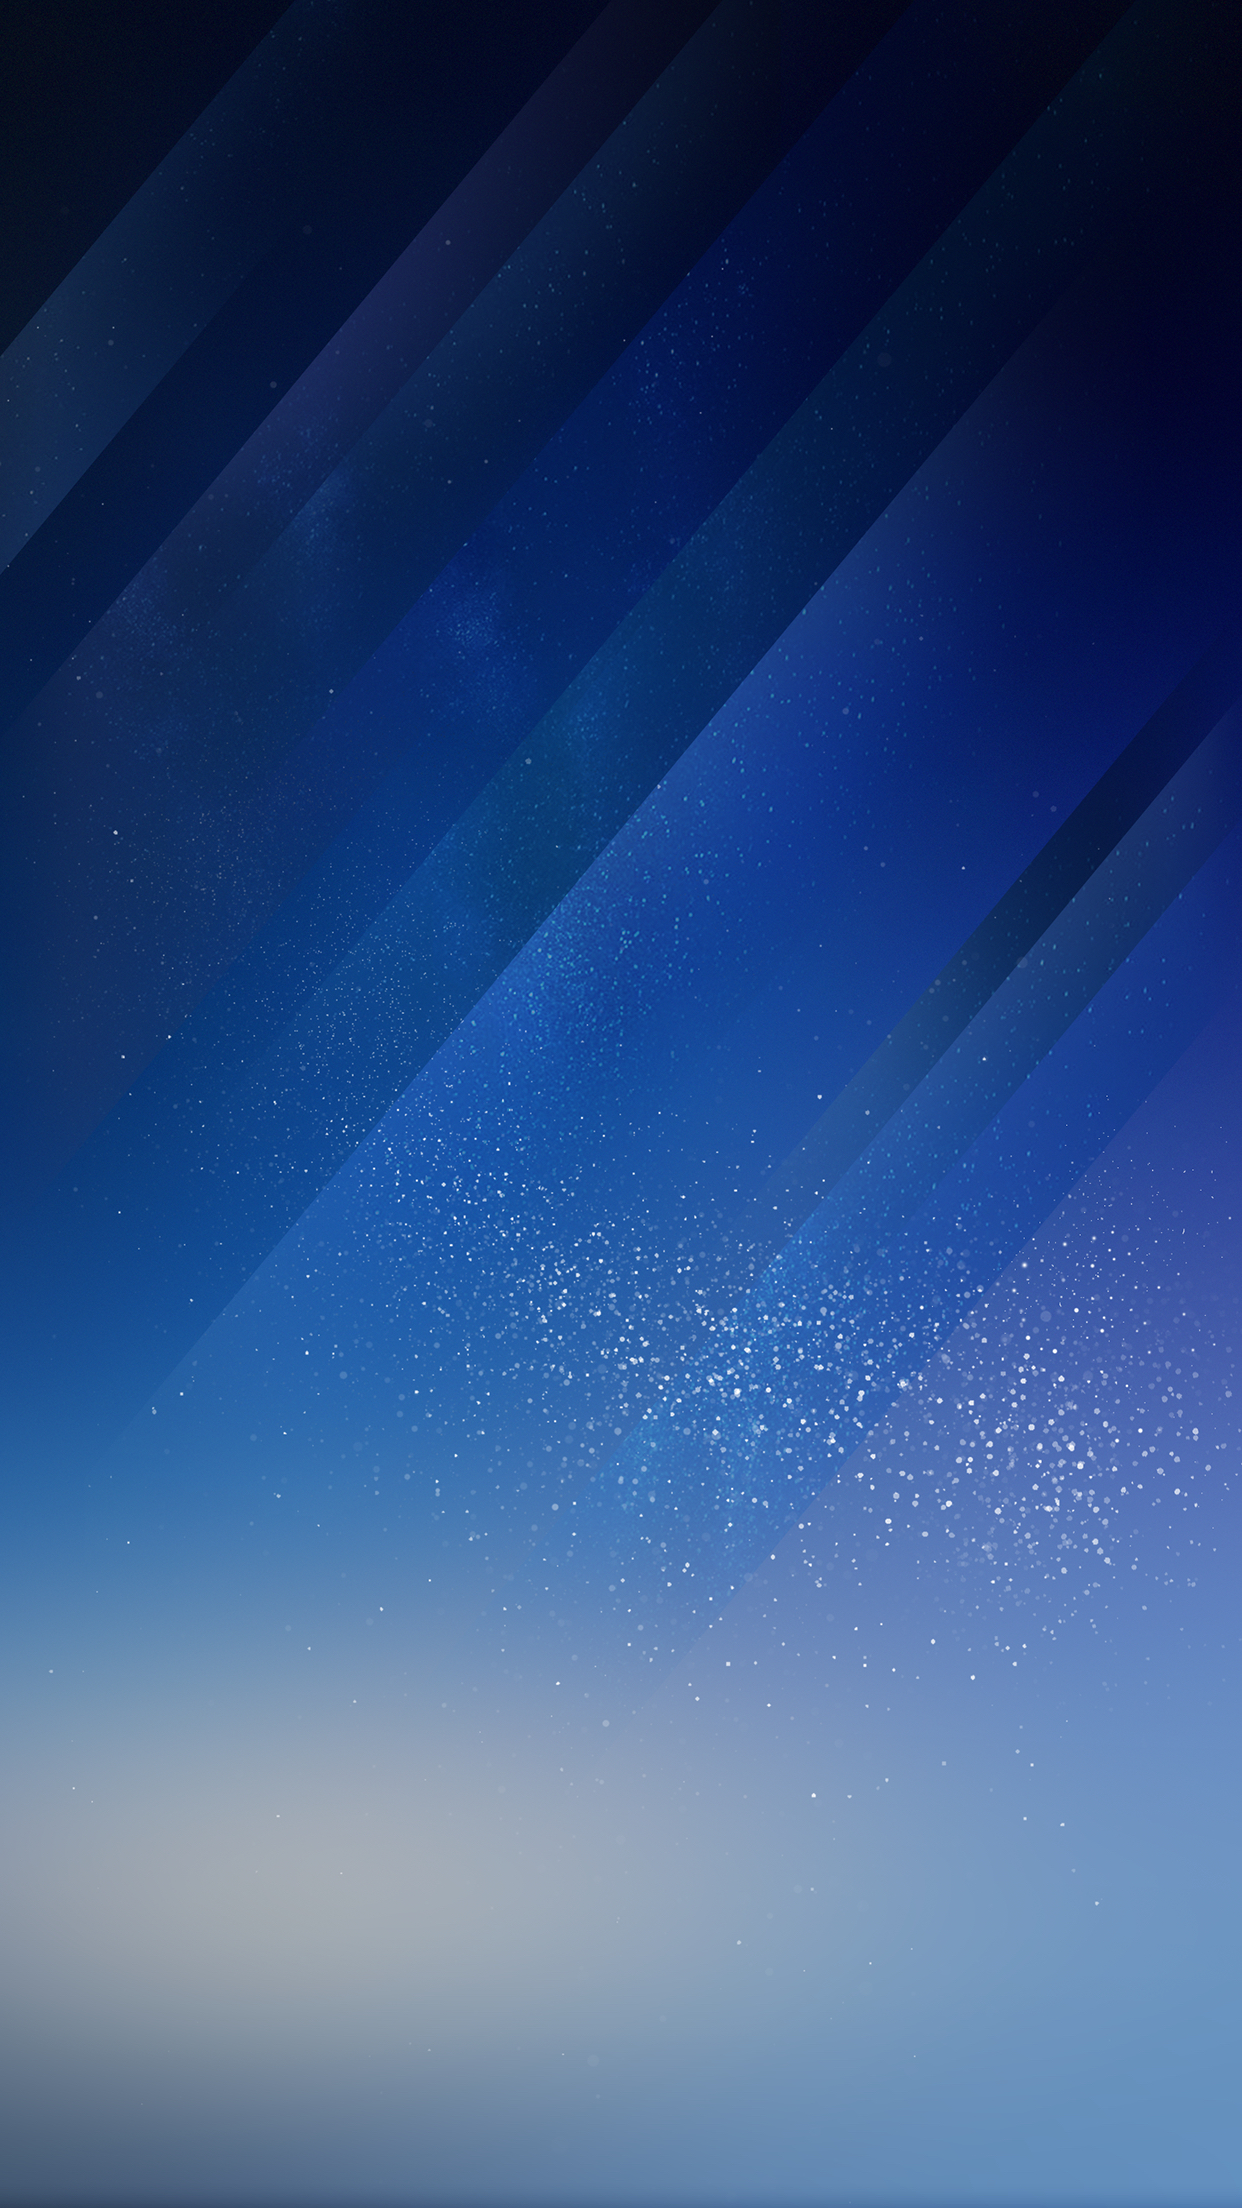 Official Samsung Galaxy S8 Wallpaper - TopOfAndroid